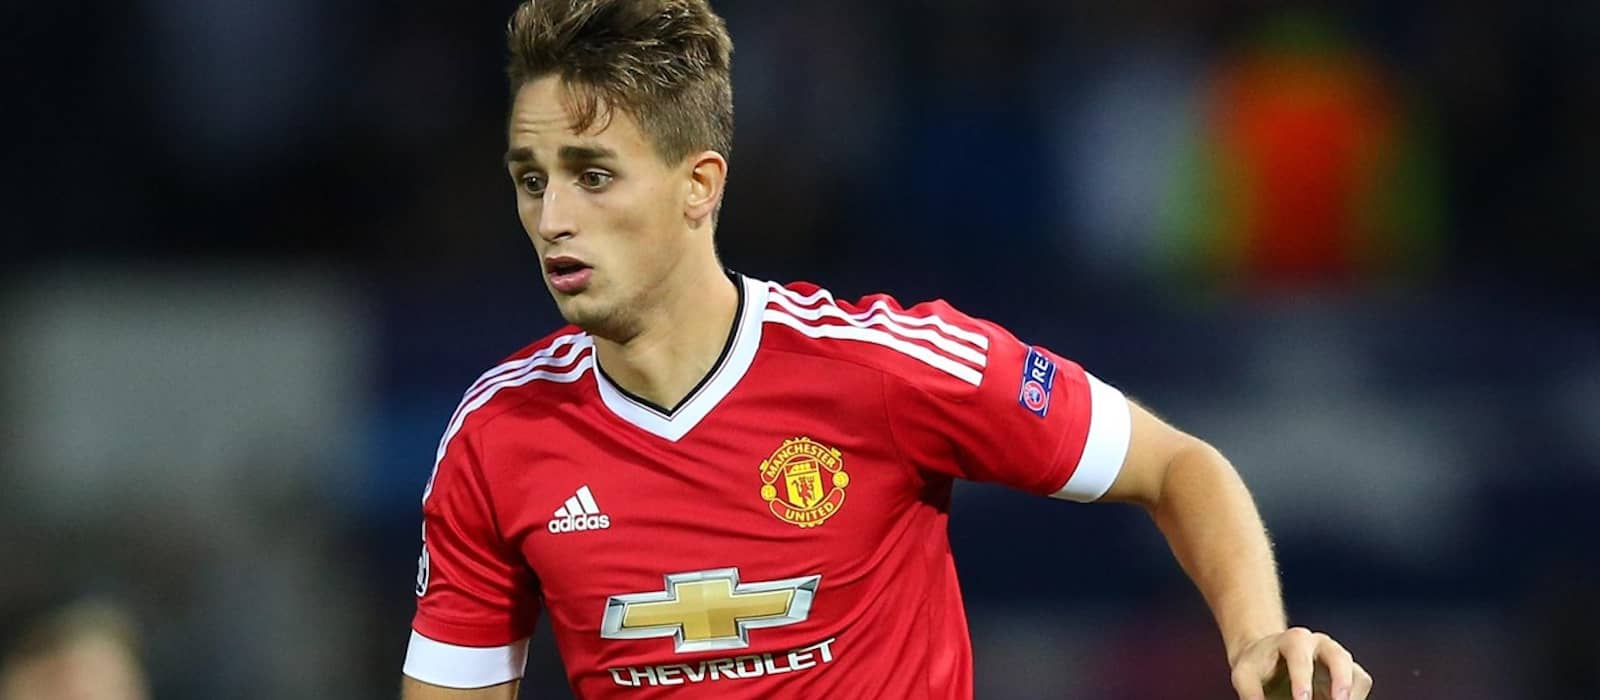 Adnan Januzaj admits confusion with Louis van Gaal's methods